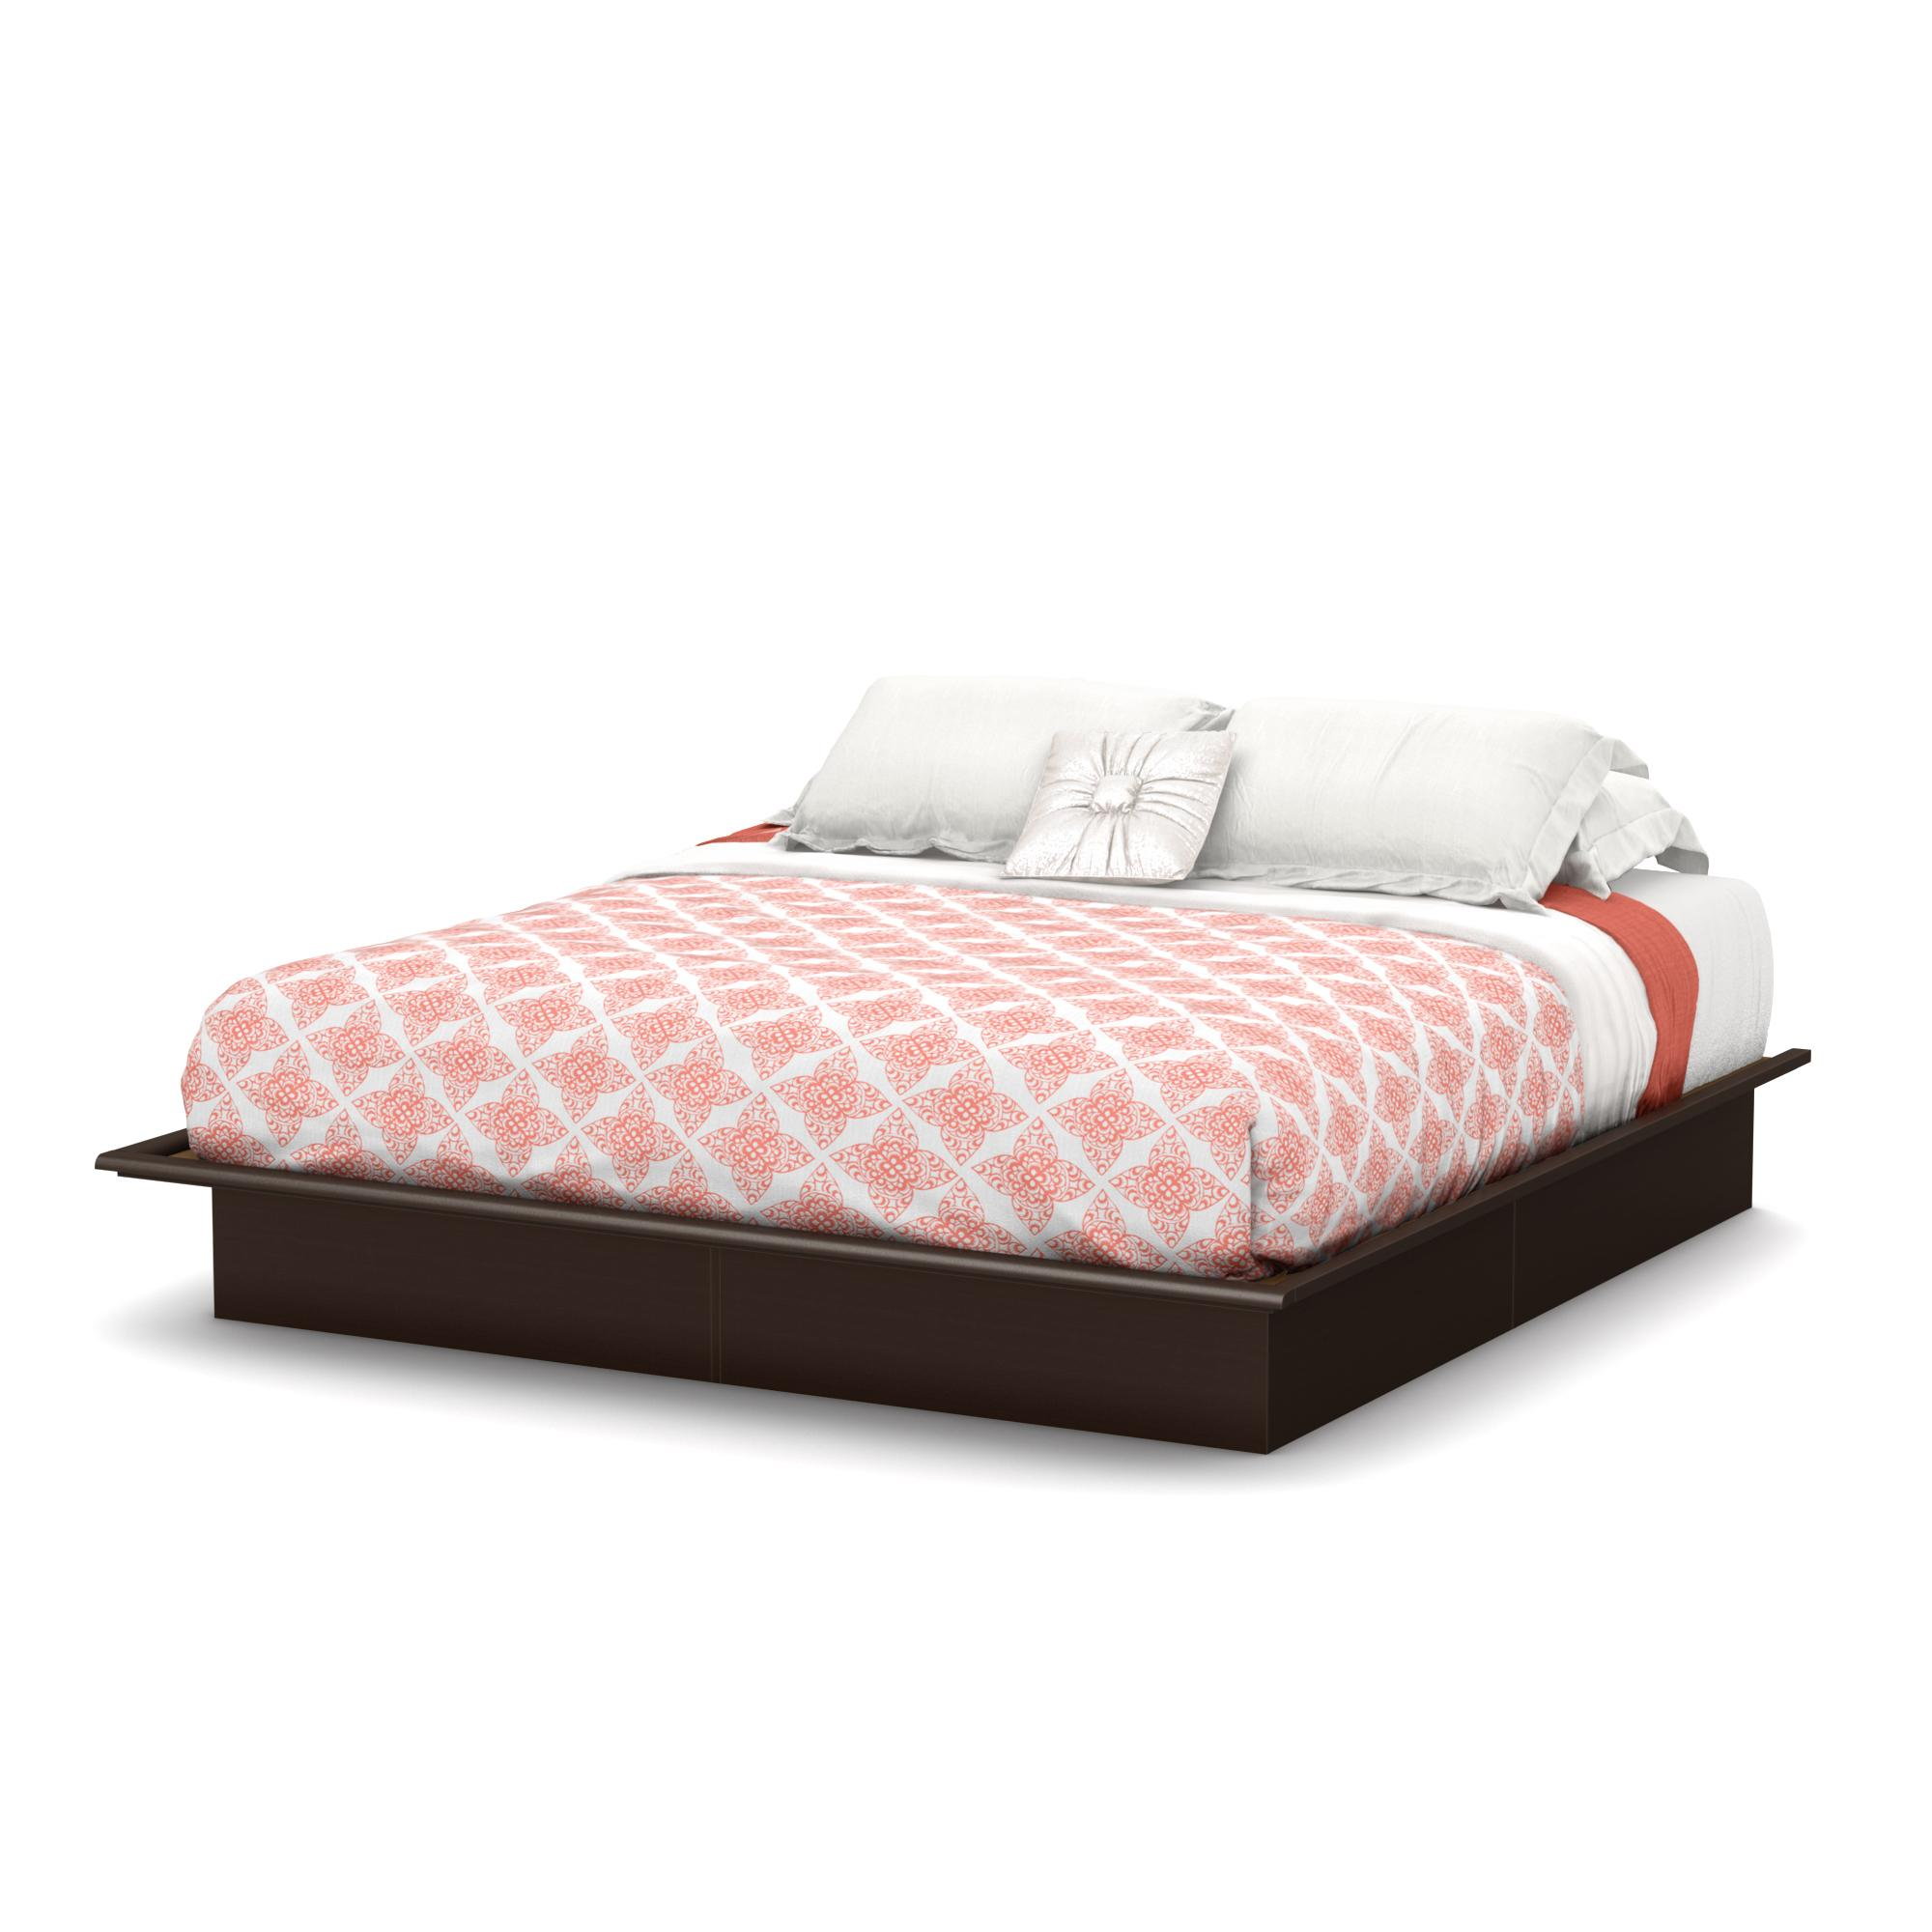 South shore step one platform bed with for Platform bed